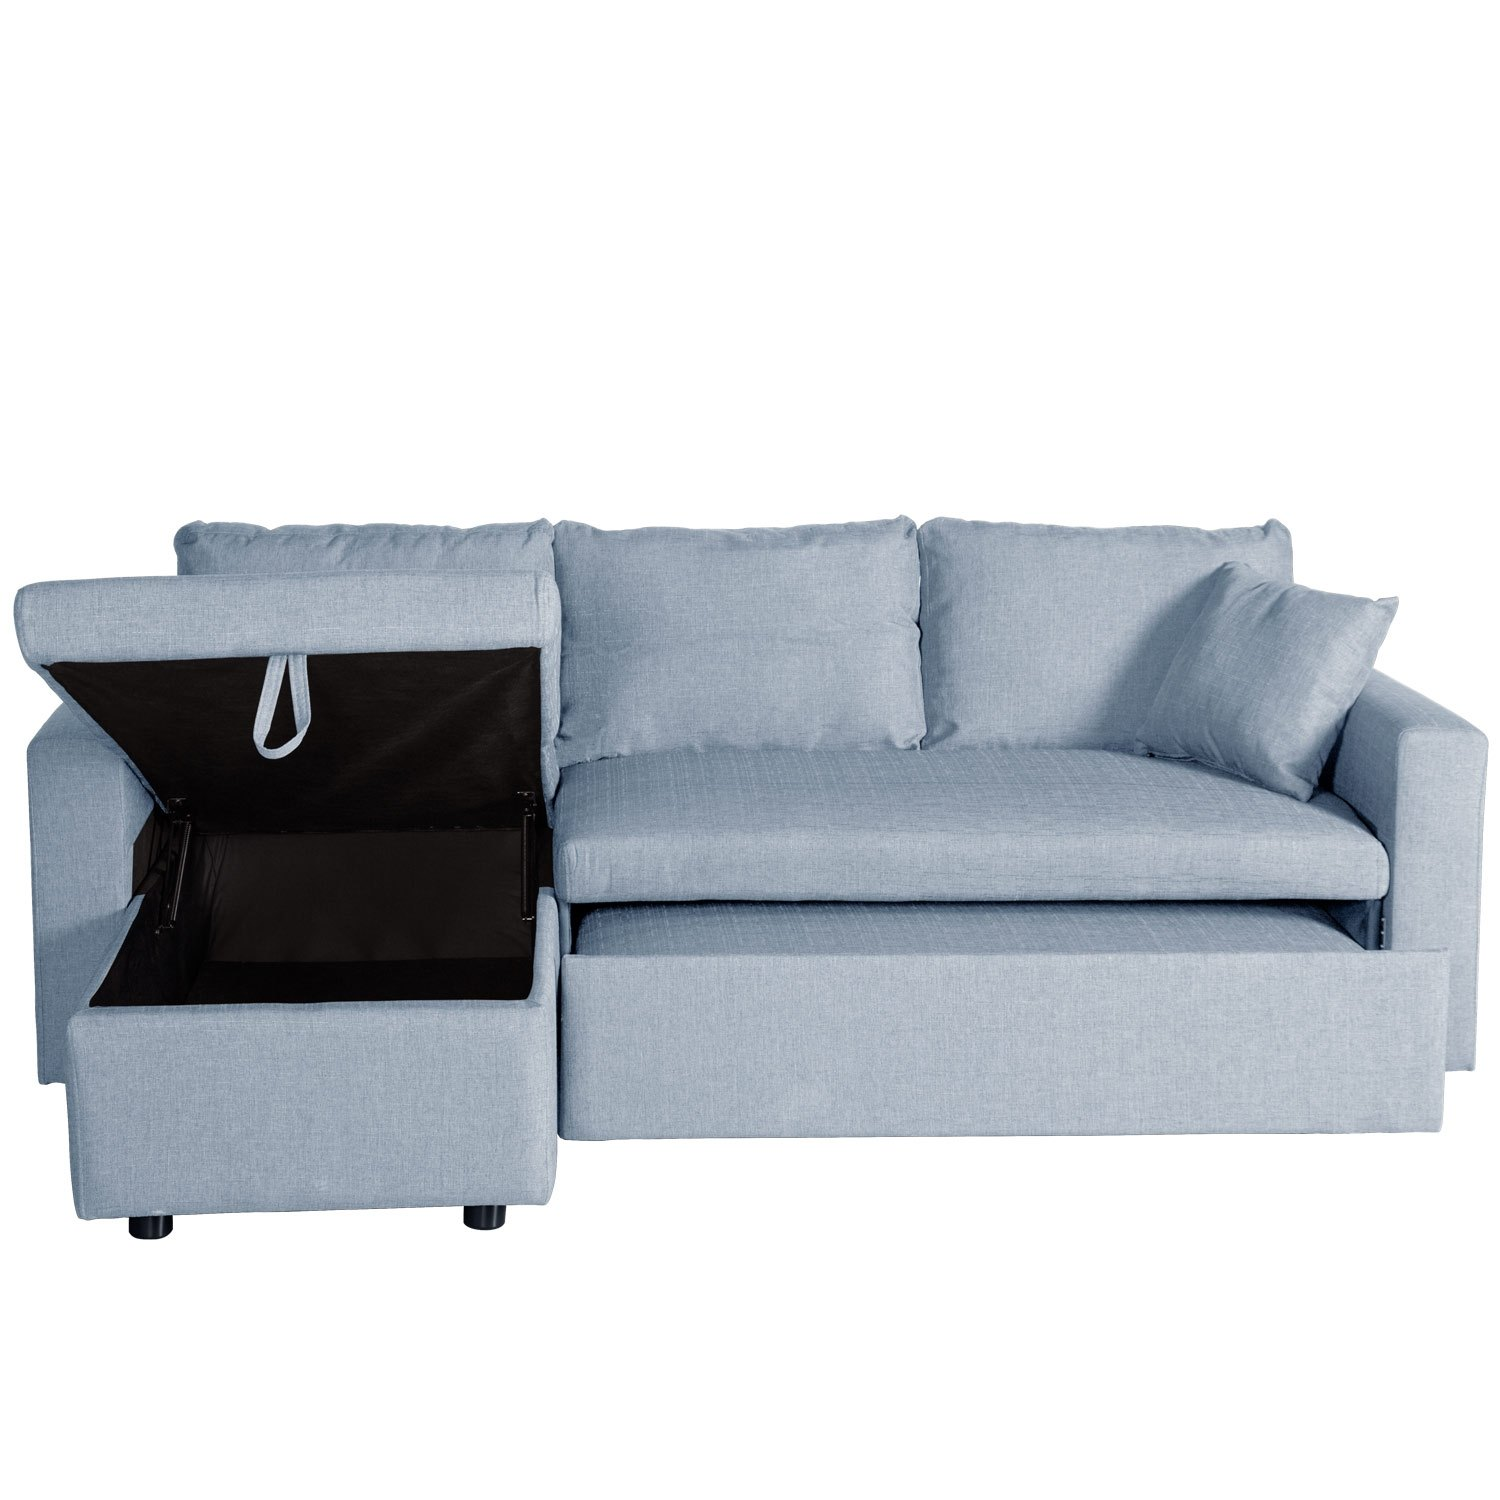 Compra online sof cama chaise longue adara barato for Sofa cama chaise longue